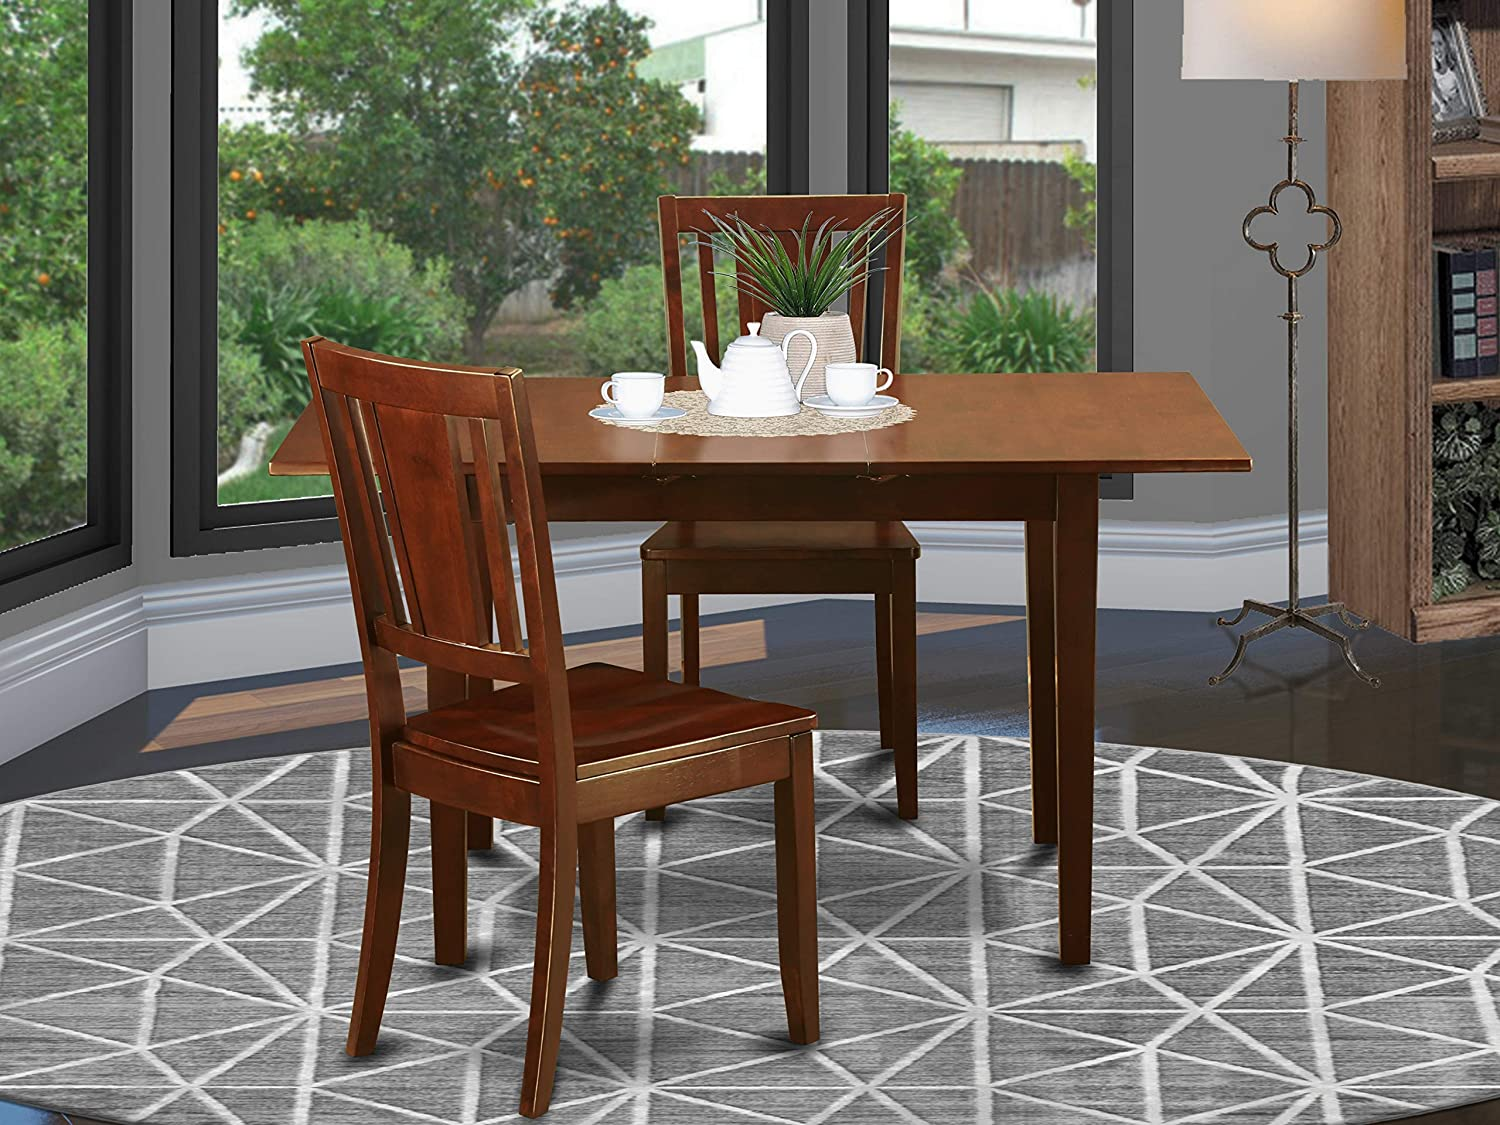 9 Pc Small dinette set   Dining Tables for small spaces and 9 Dining Chairs